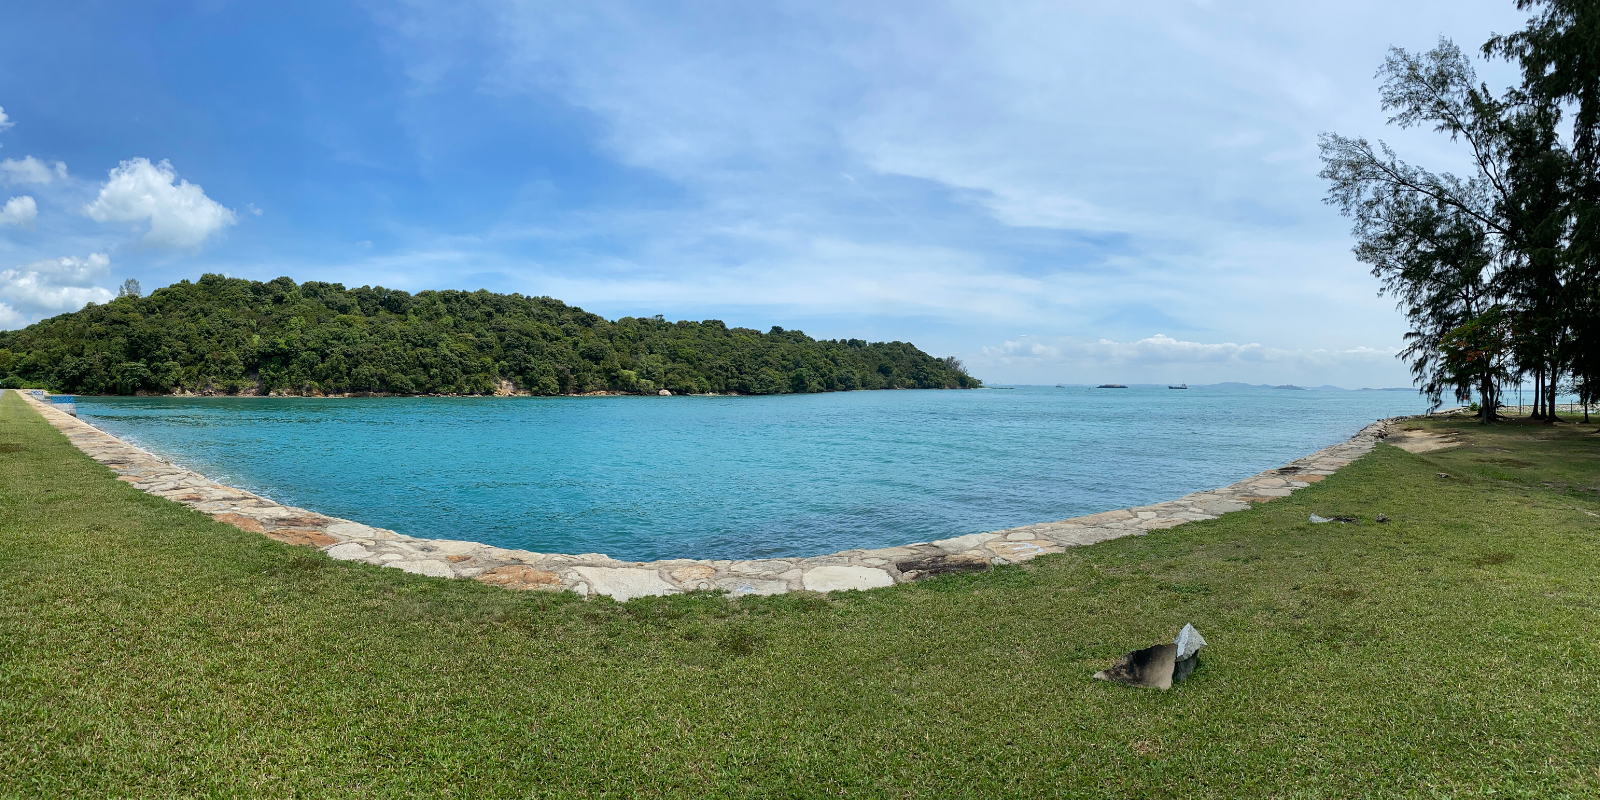 Discovering Singapore's Rich Marine Ecosystems: The Latest St John's Island Study Tour